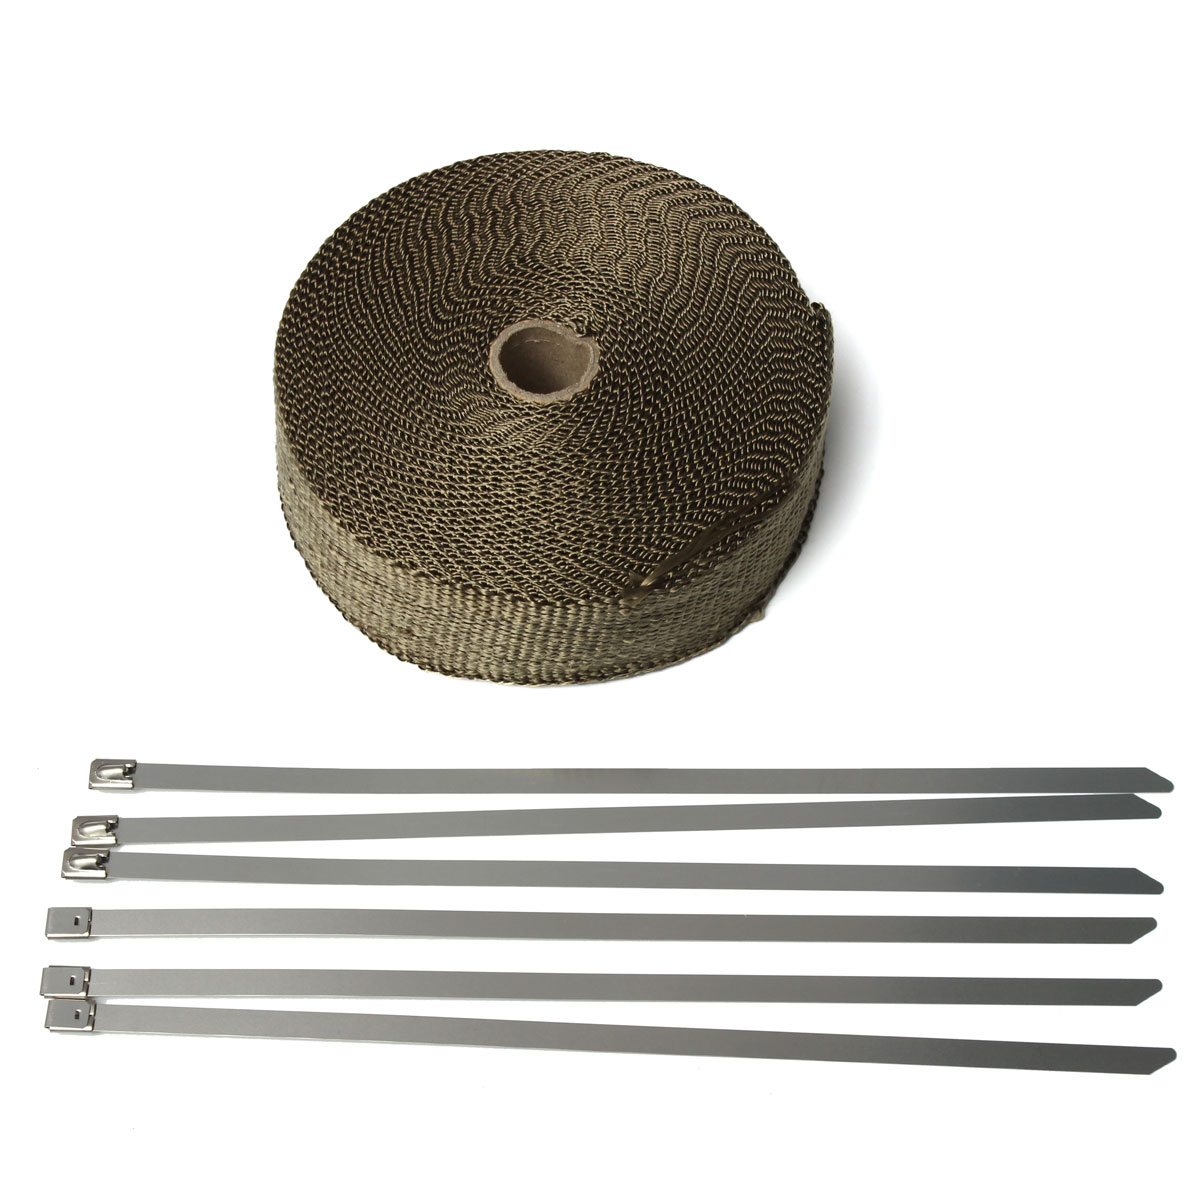 15M*50MM Thermal Exhaust Header Pipe Tape Heat Insulating Wrap Tape Fireproof Cloth Roll With 6 Durable Steel Ties Kit